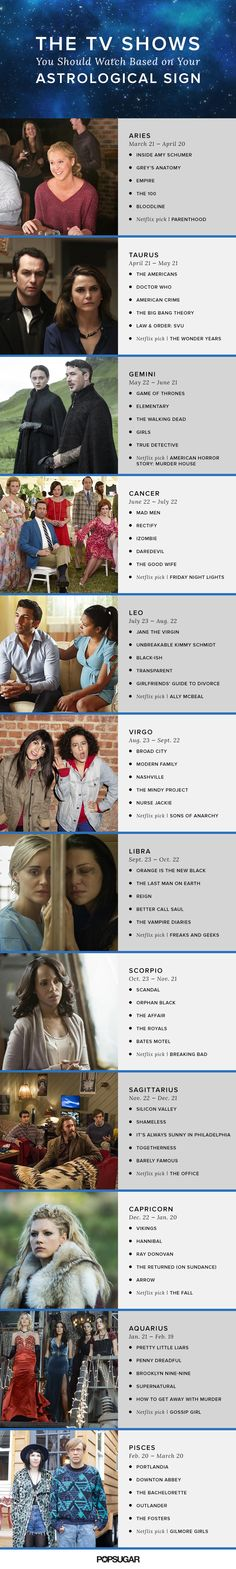 TV Shows to Watch Based on the Zodiac